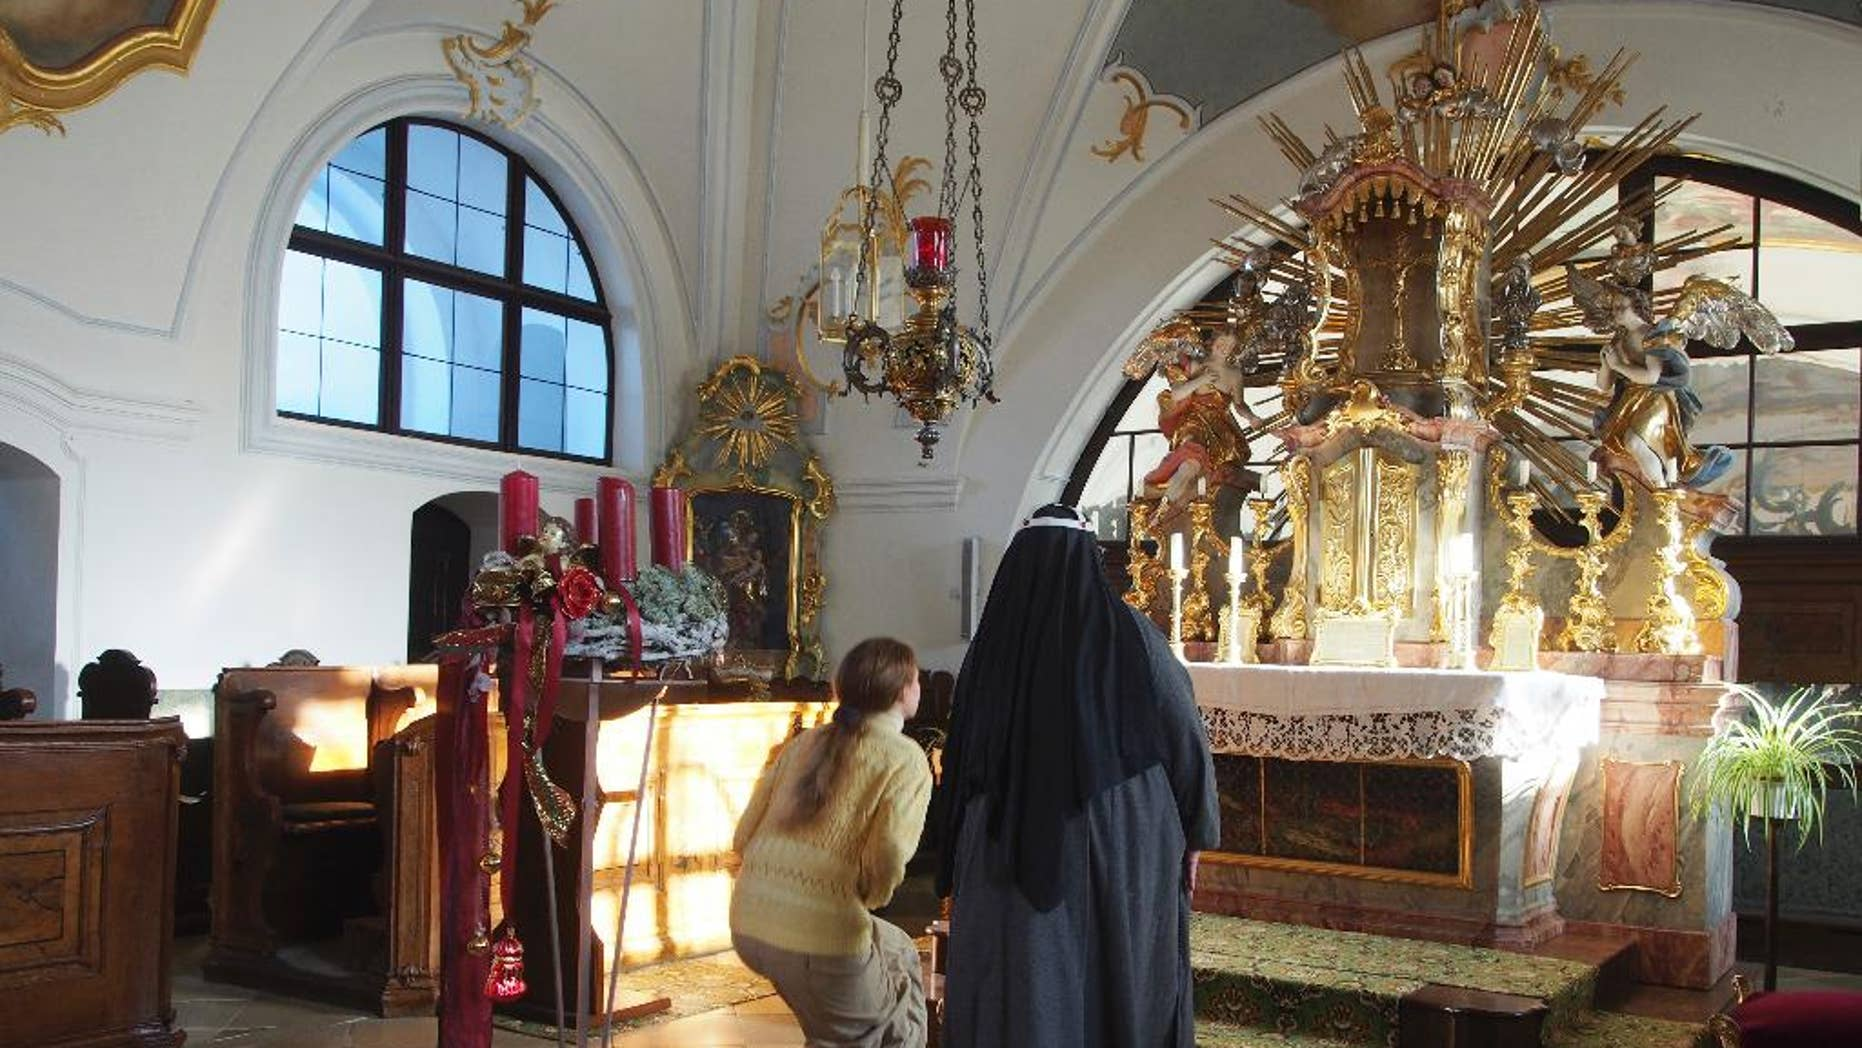 FILE -  In this Dec. 6, 2016 file photo Sister Apollonia, right, and Postulant Claudia Schwarz kneel in front of the altar of the chapel of the abbey in Altomuenster, Germany. Bavarian Catholic church authorities said Thursday, Jan. 19, 2017 they have closed Germany's last Bridgettine Order abbey at the request of the Vatican _ renewing concerns about what will happen to the property, including a precious library, which now goes to the local diocese.  (AP Photo/David Rising, file)